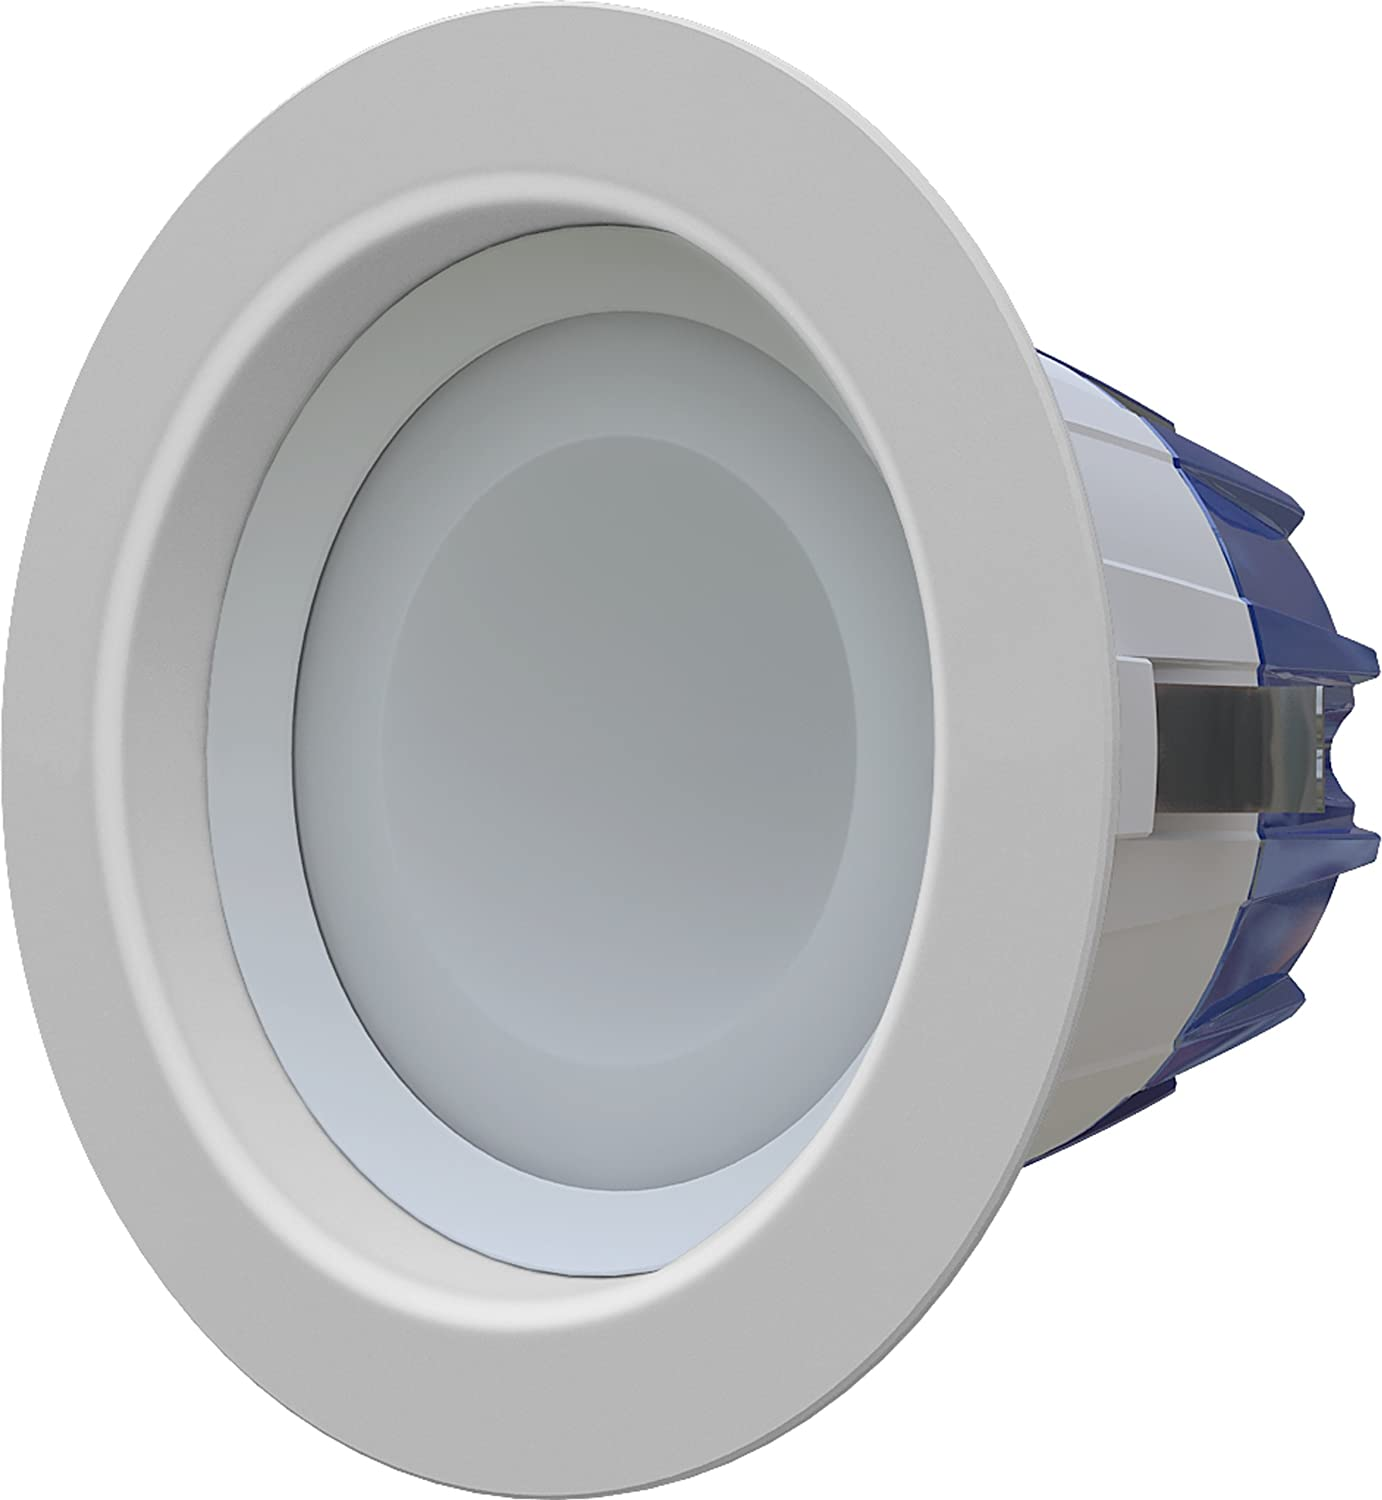 Sylvania Ultra LED 4-Inch Downlight Recessed Kit - Complete Recessed ...